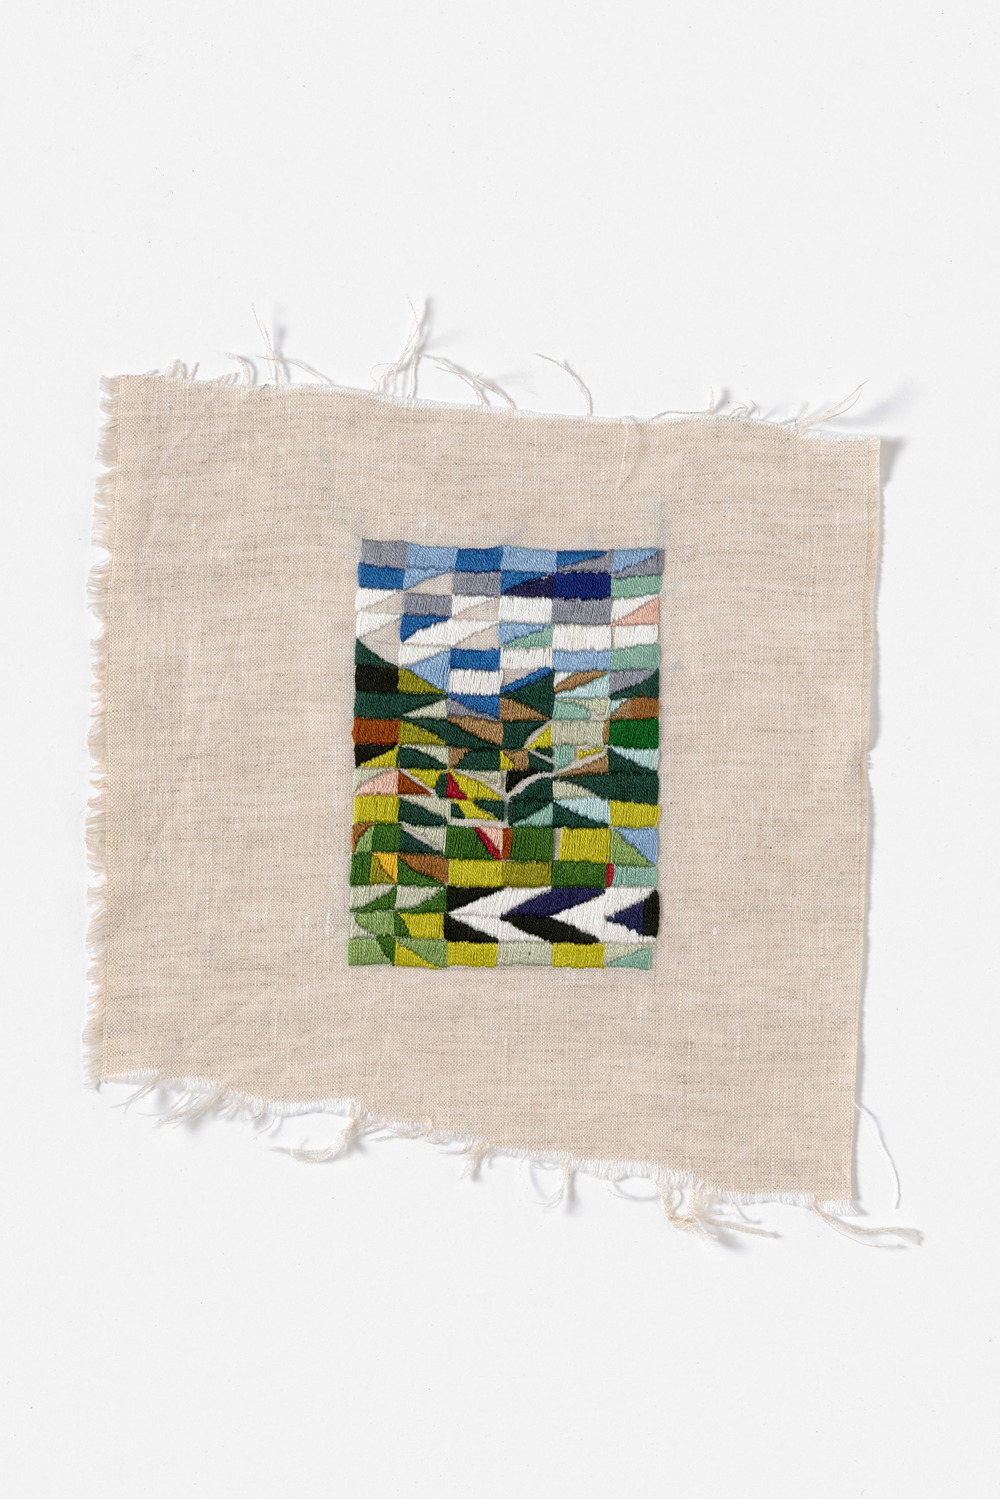 Middle of the road  2014 Cotton thread on linen 22 x 22cm